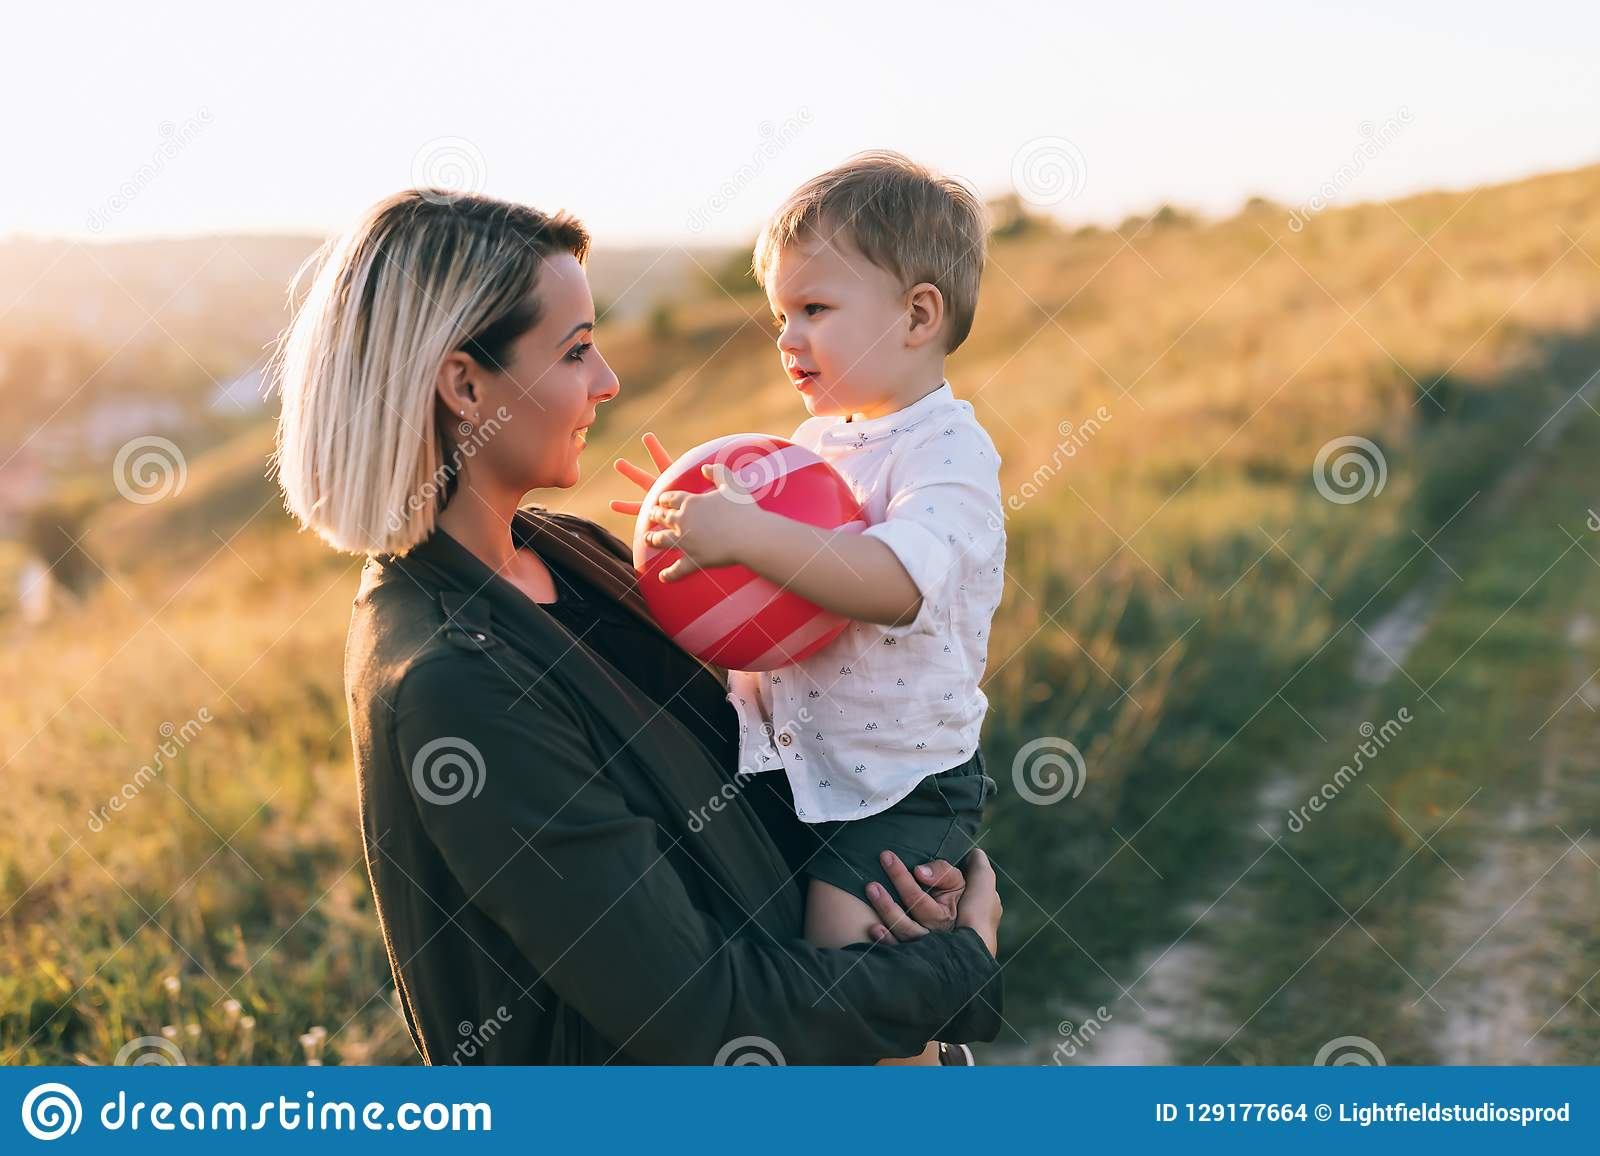 happy young mother carrying adorable little son with red